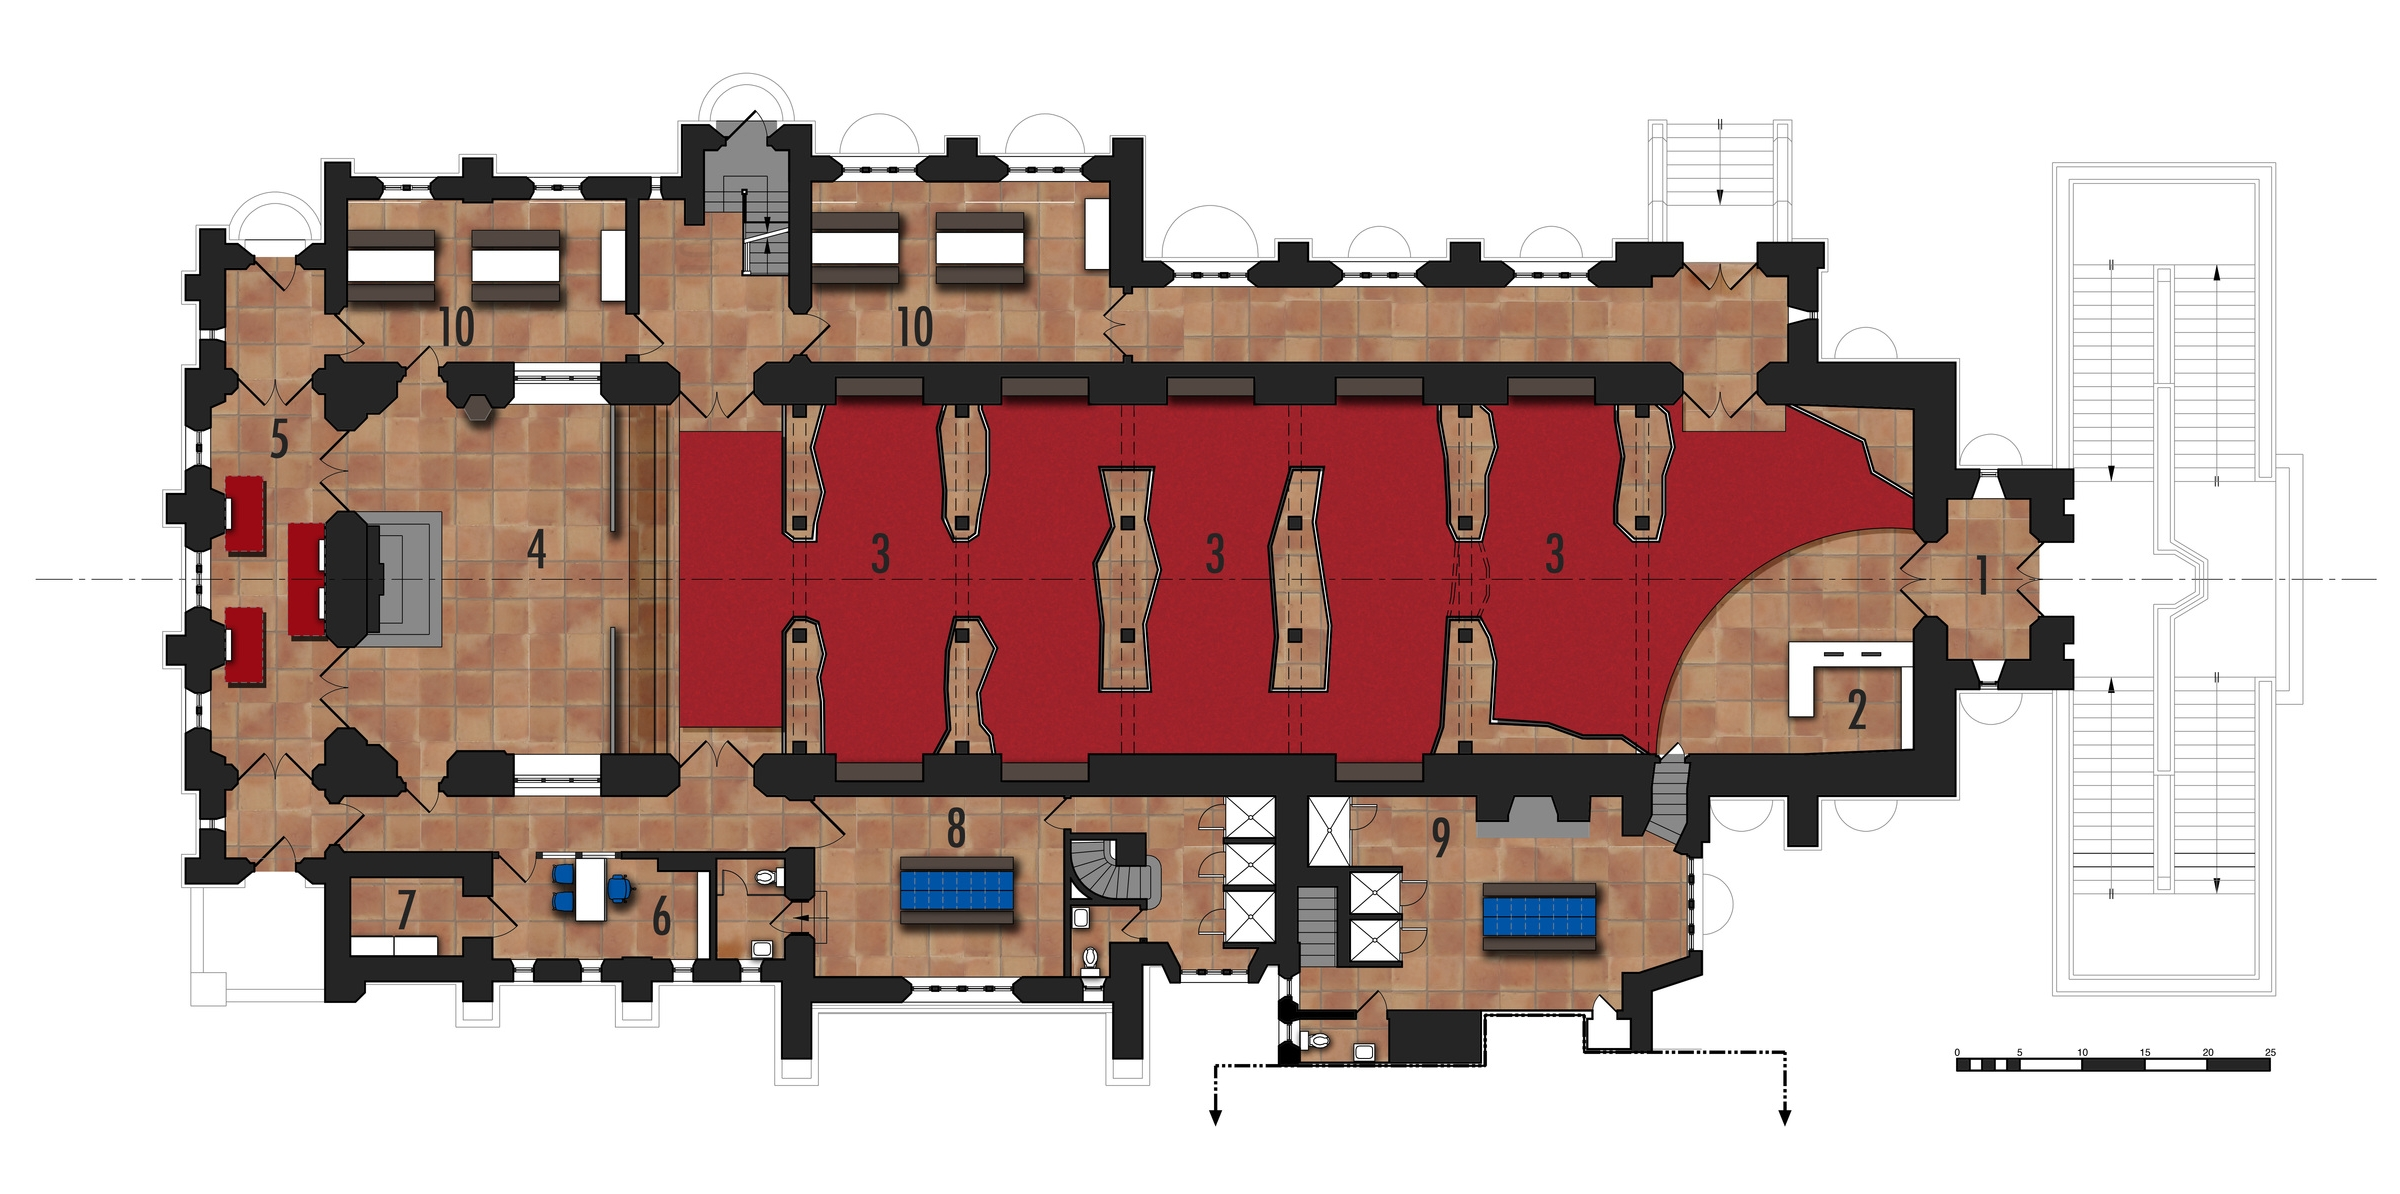 Main Floor Plan   1.Vestibule 2.Front Desk  3.Climbing Area   4.Altar 5.Conditioning Room 6.Office   7.Storage   8.Women's Locker Room  9.Men's Locker Room  10.Party and Product Demo Room